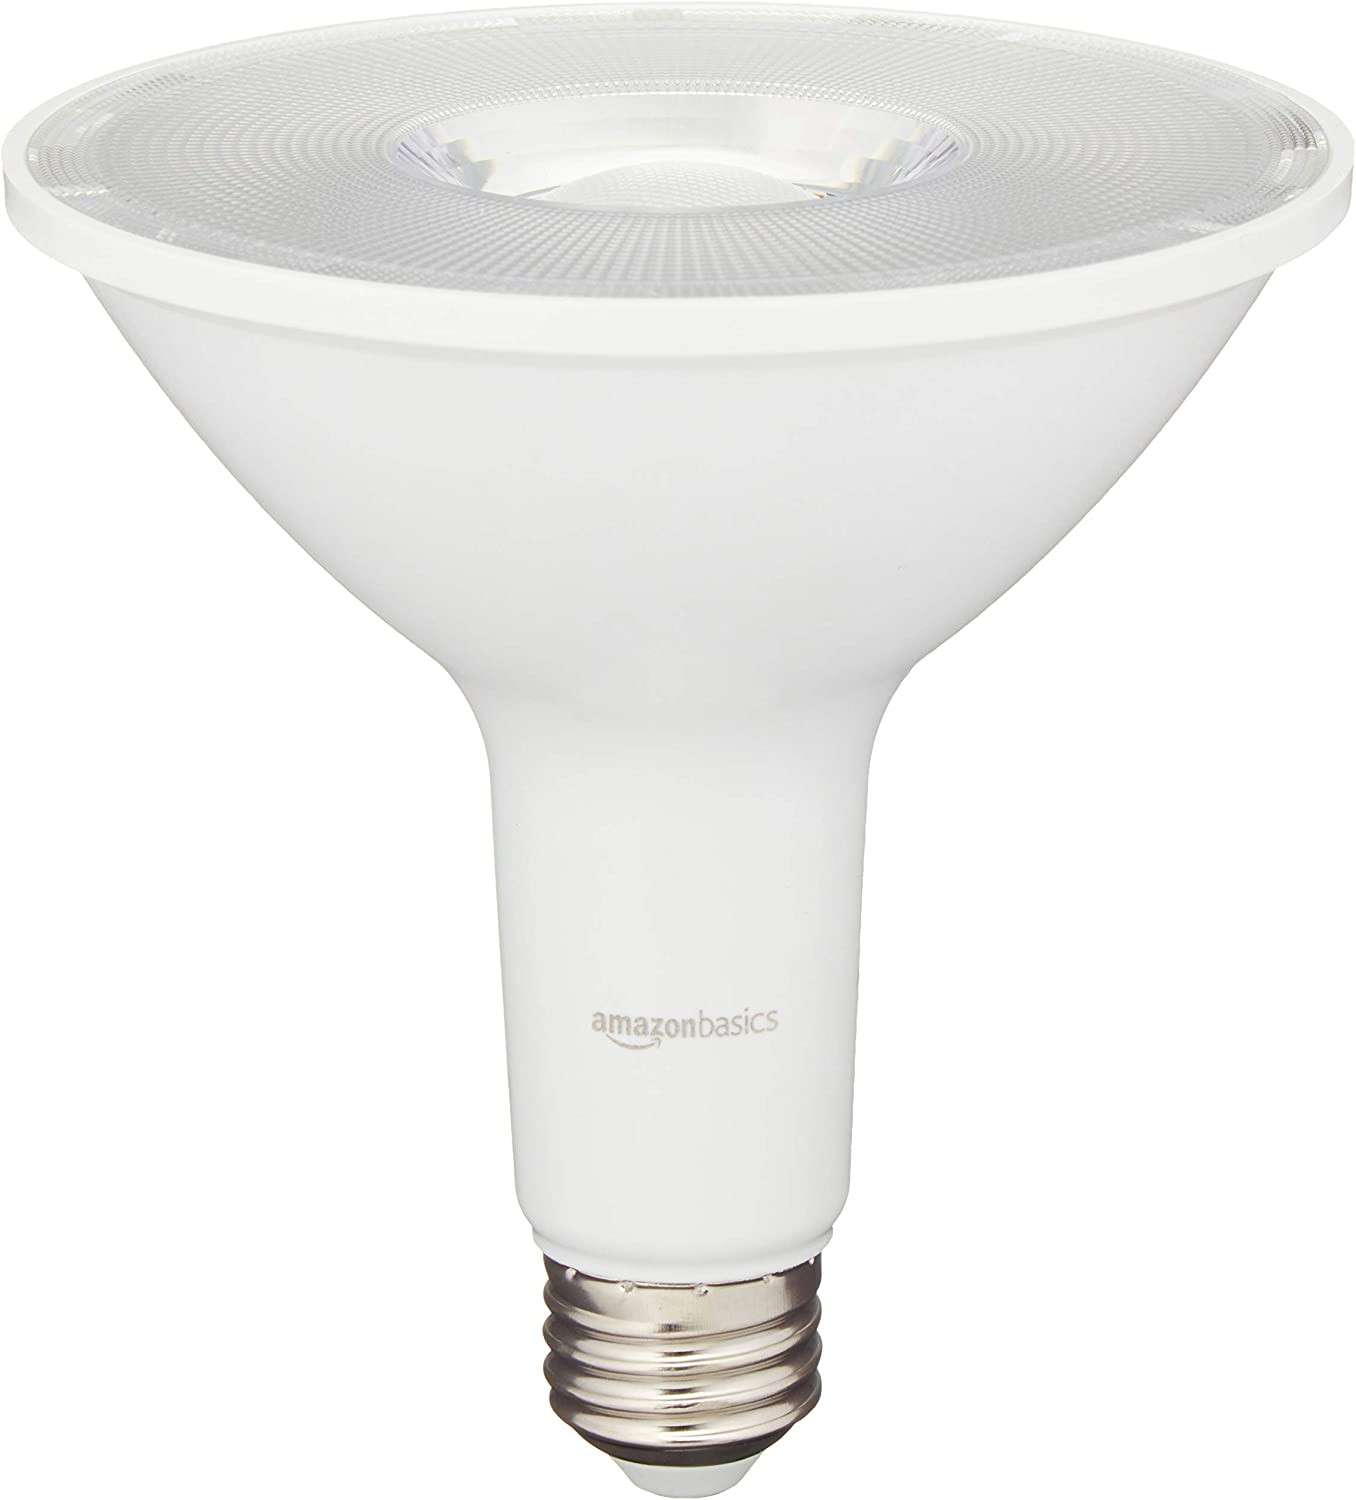 AmazonBasics 90 Watt Equivalent, 3000K White, Dimmable, 15,000 Hour Lifetime, PAR38 LED Light Bulb, 6-Pack